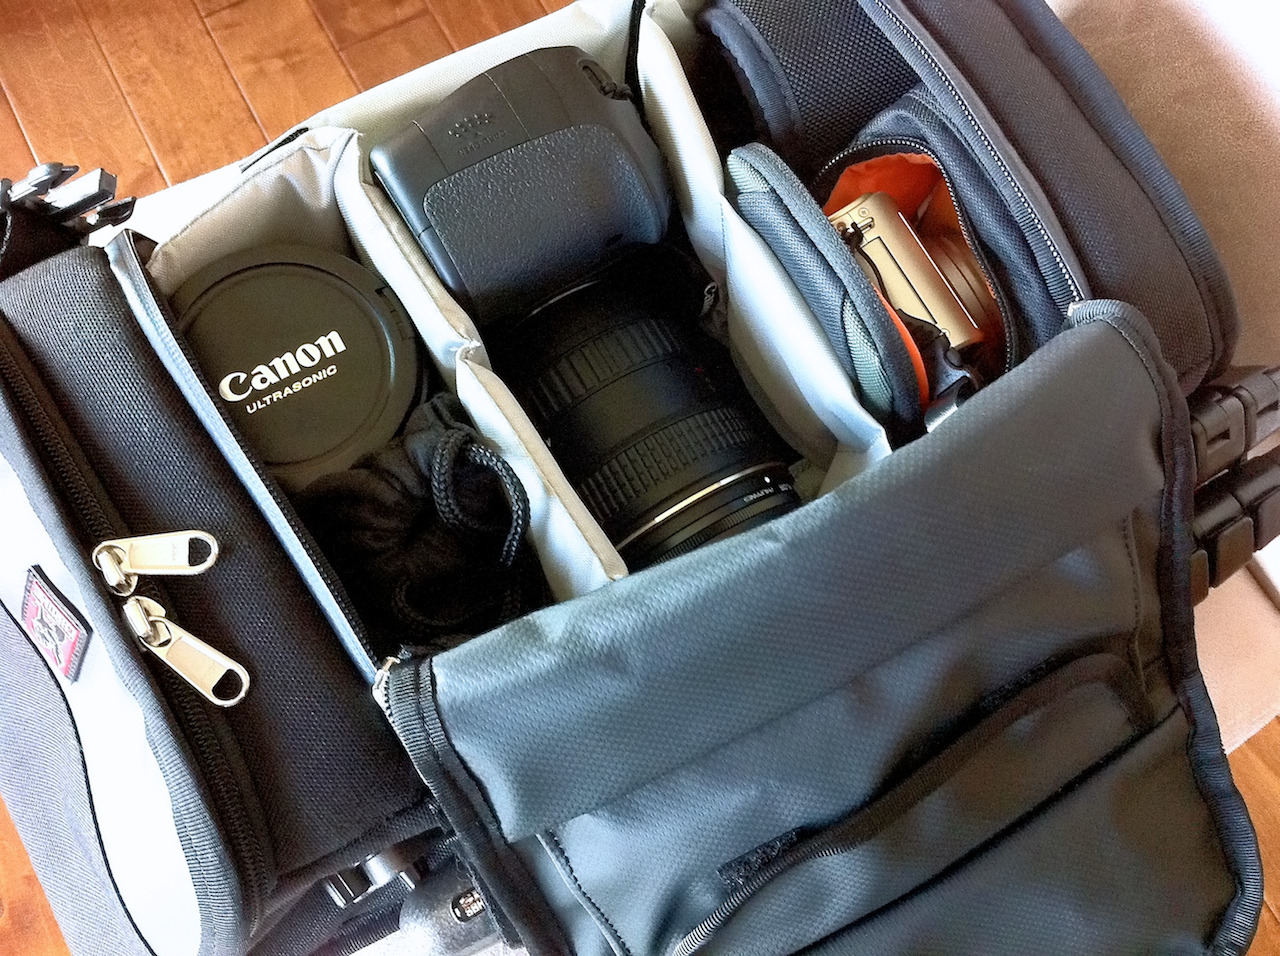 Lovin' my new camera bag!  My old camera bag still had storage areas for film, so I thought it was time for an update before I head to Ireland soon.   Not only is the Chrome Niko camera bag stylish, it's also very functional.   Its sling-style strap is great, and the bag perfectly fits all of the gear that I'm taking on the trip:  Canon 60D Canon 24-105mm f/4 Tokina 12-24mm f/4 Canon 50mm f/1.8 Lumix LX5 (inside of a Lowepro Apex 60 AW bag) Black Rapid RS-7 strap A couple of Hoya Filters in the main flap Chargers, Canon Remote, extra SD CARDS, Monster Outlet, power plug adapter, and OP/TECH rain sleves in the top Slik Sprint Mini II Tripod attached to the side [click on any item above for more info]